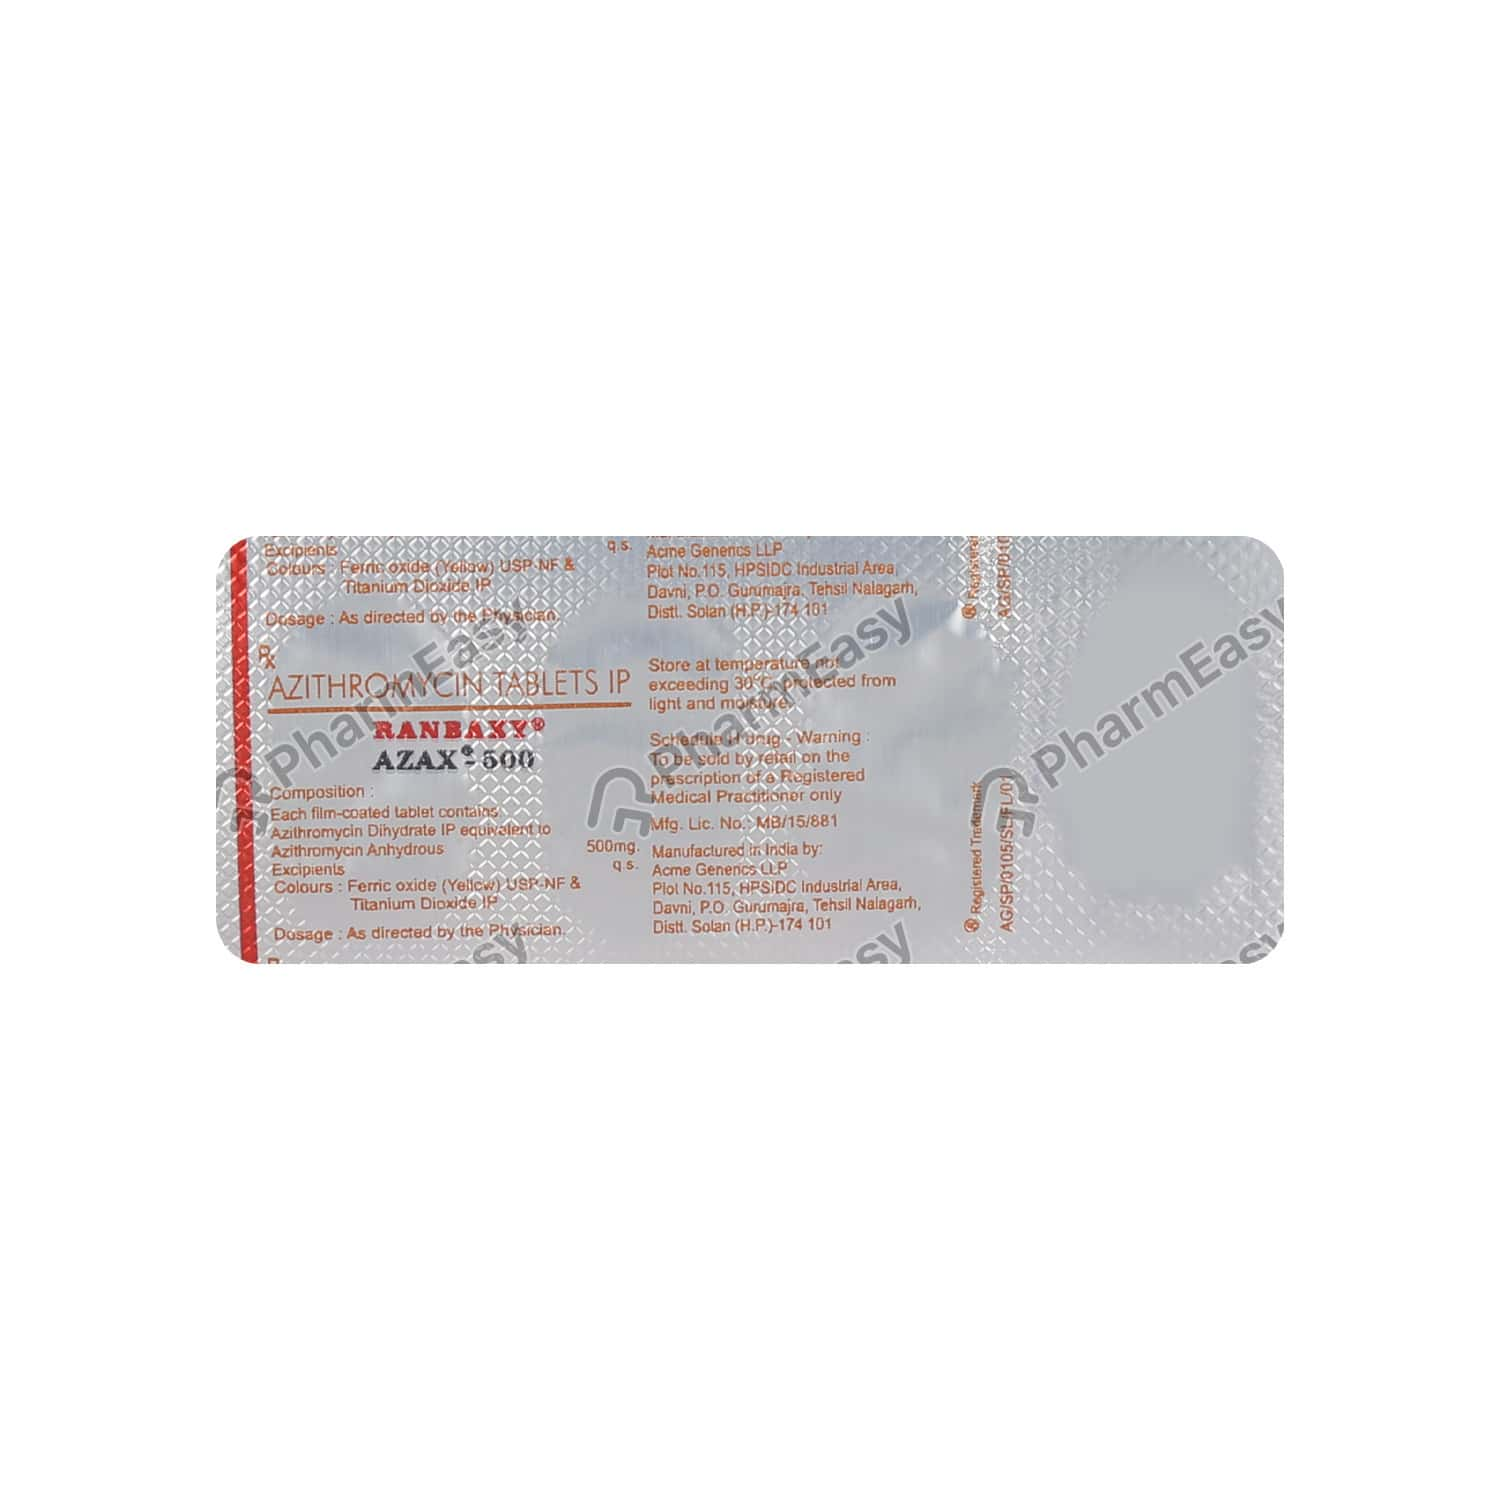 Azax 500mg Tablet